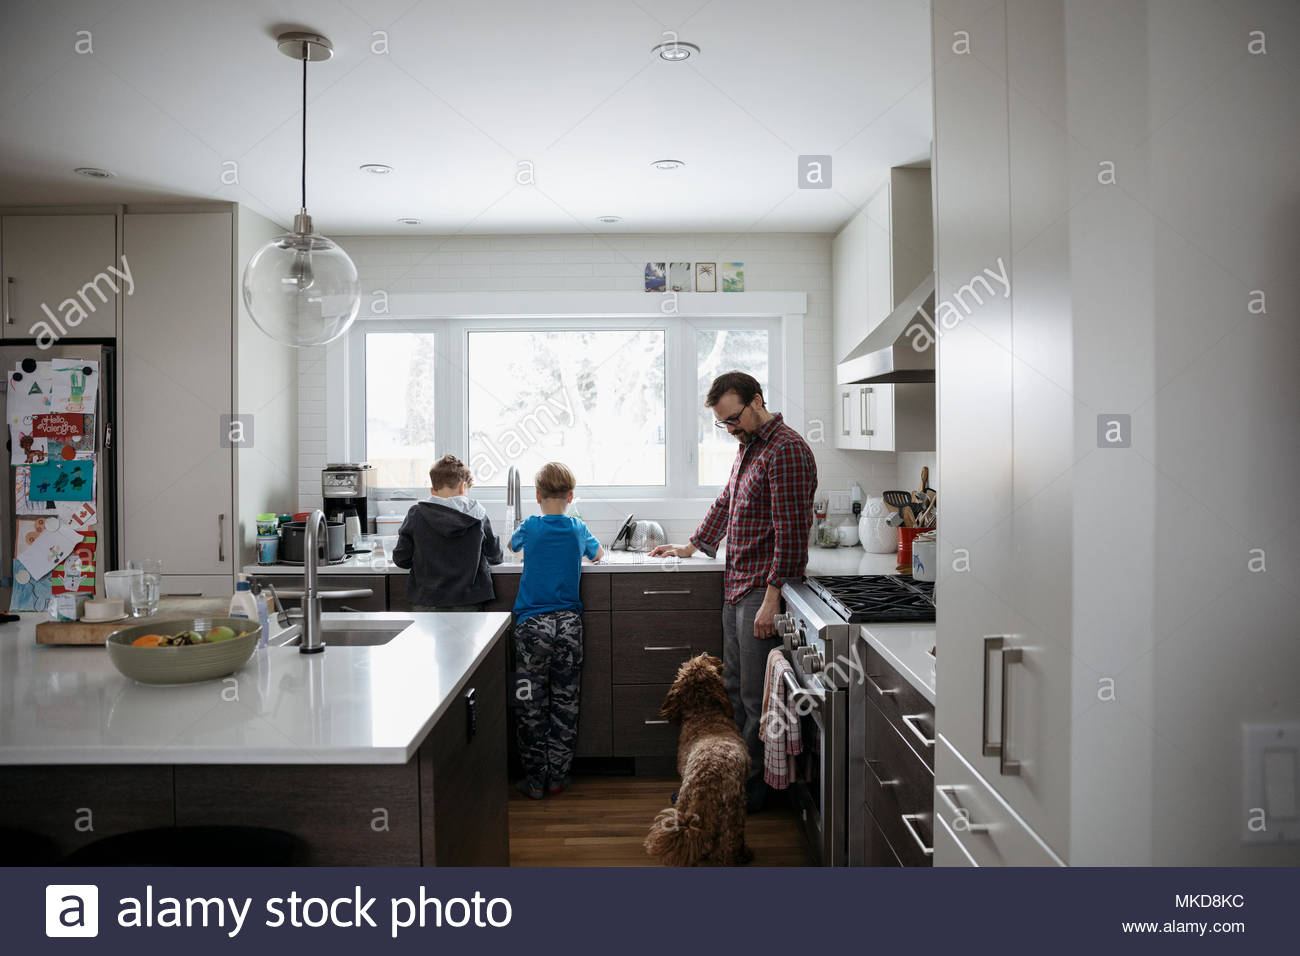 Dog watching father and sons doing dishes at kitchen sink - Stock Image